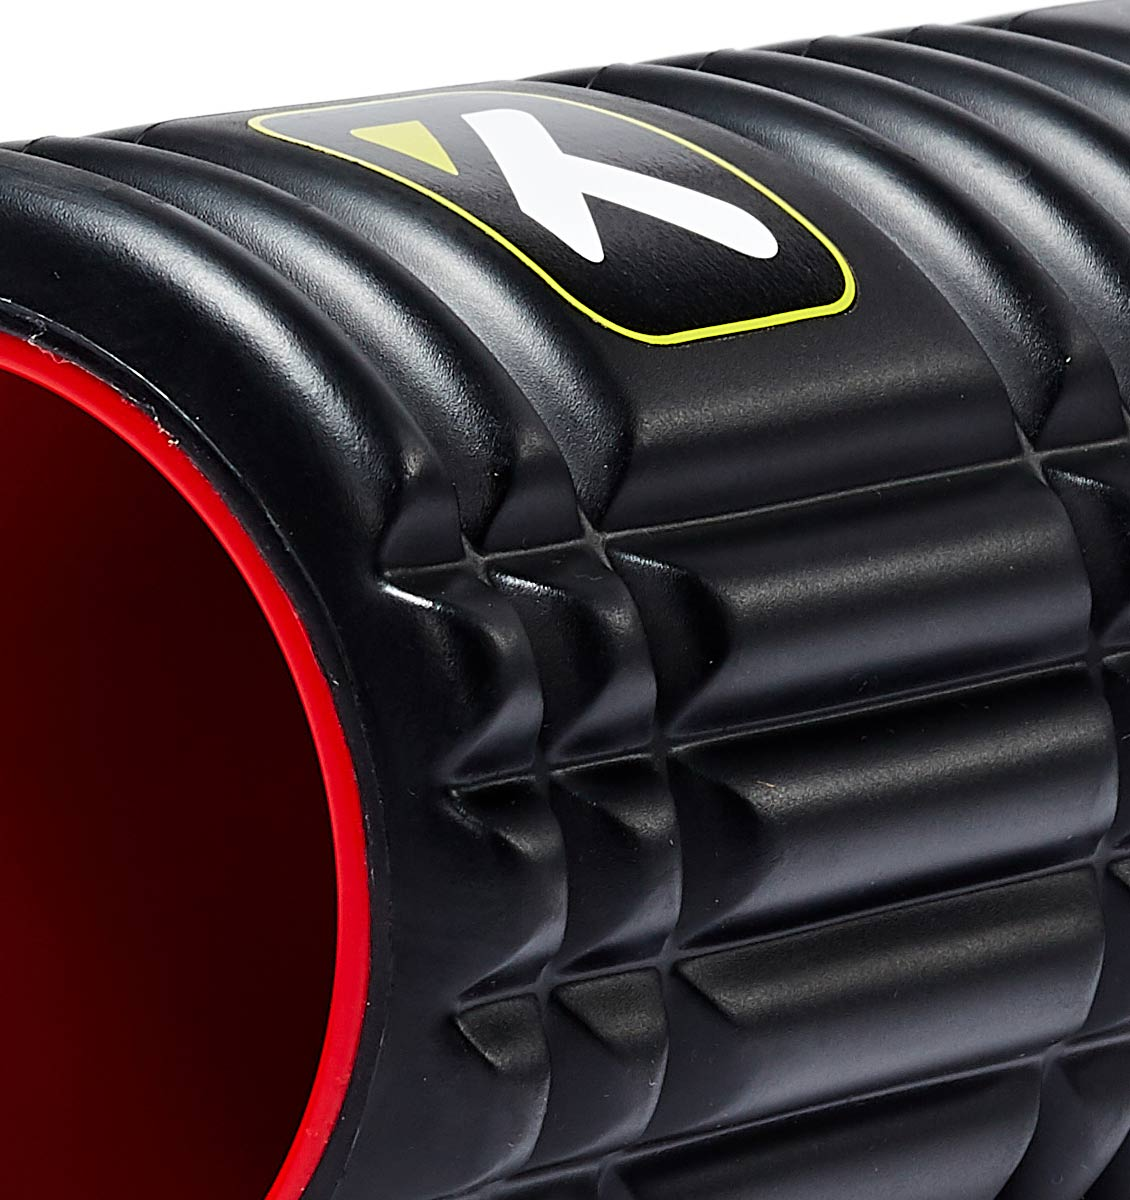 TPT3GRDPXX00000 TriggerPoint The Grid 1.0 X Foam Roller - 45 Degree Angle - Close Up